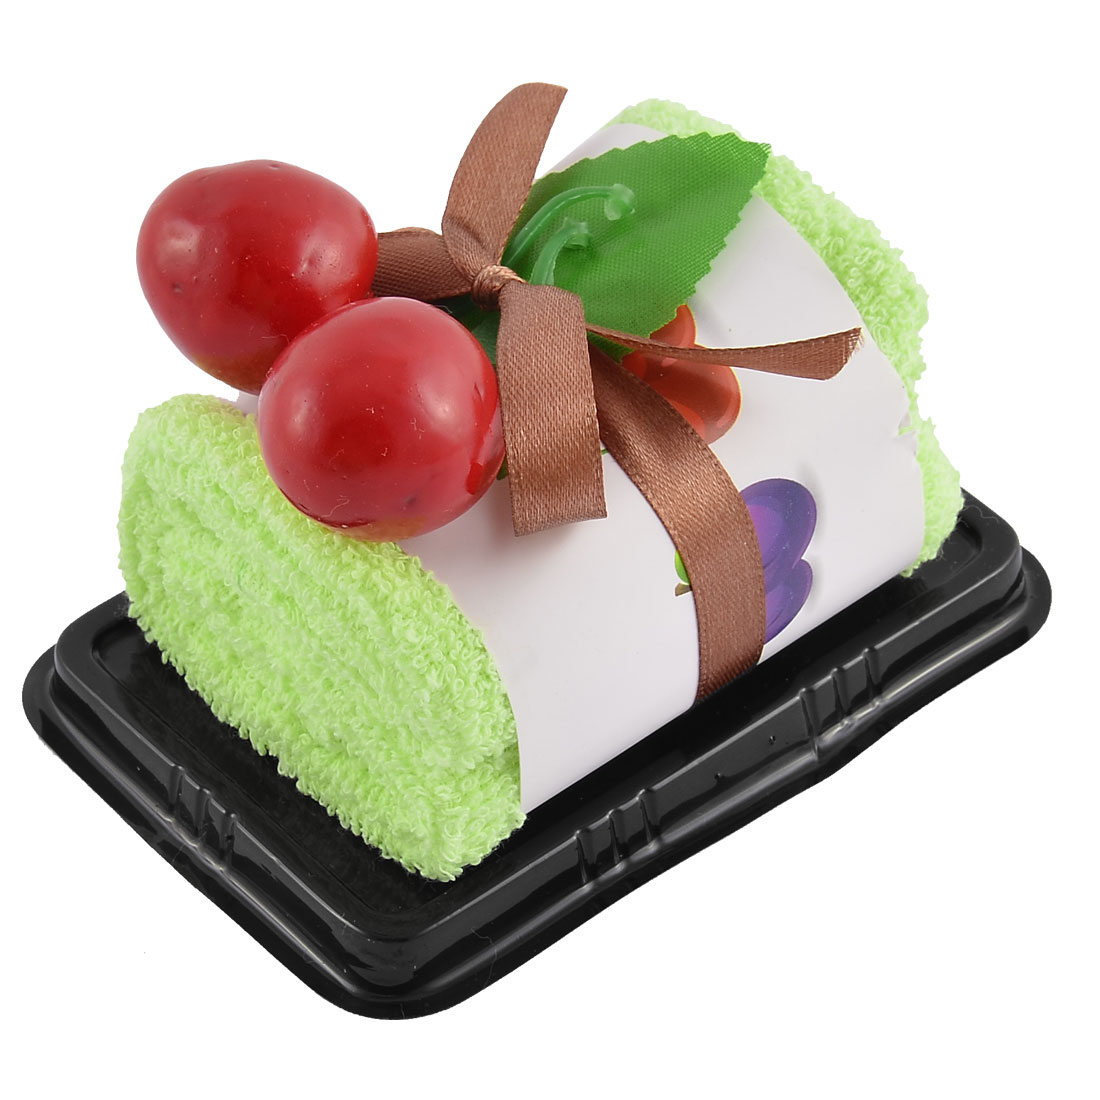 Plastic Simulated Cherry Decor Square Roll Cake Towel Gift Ornament Green